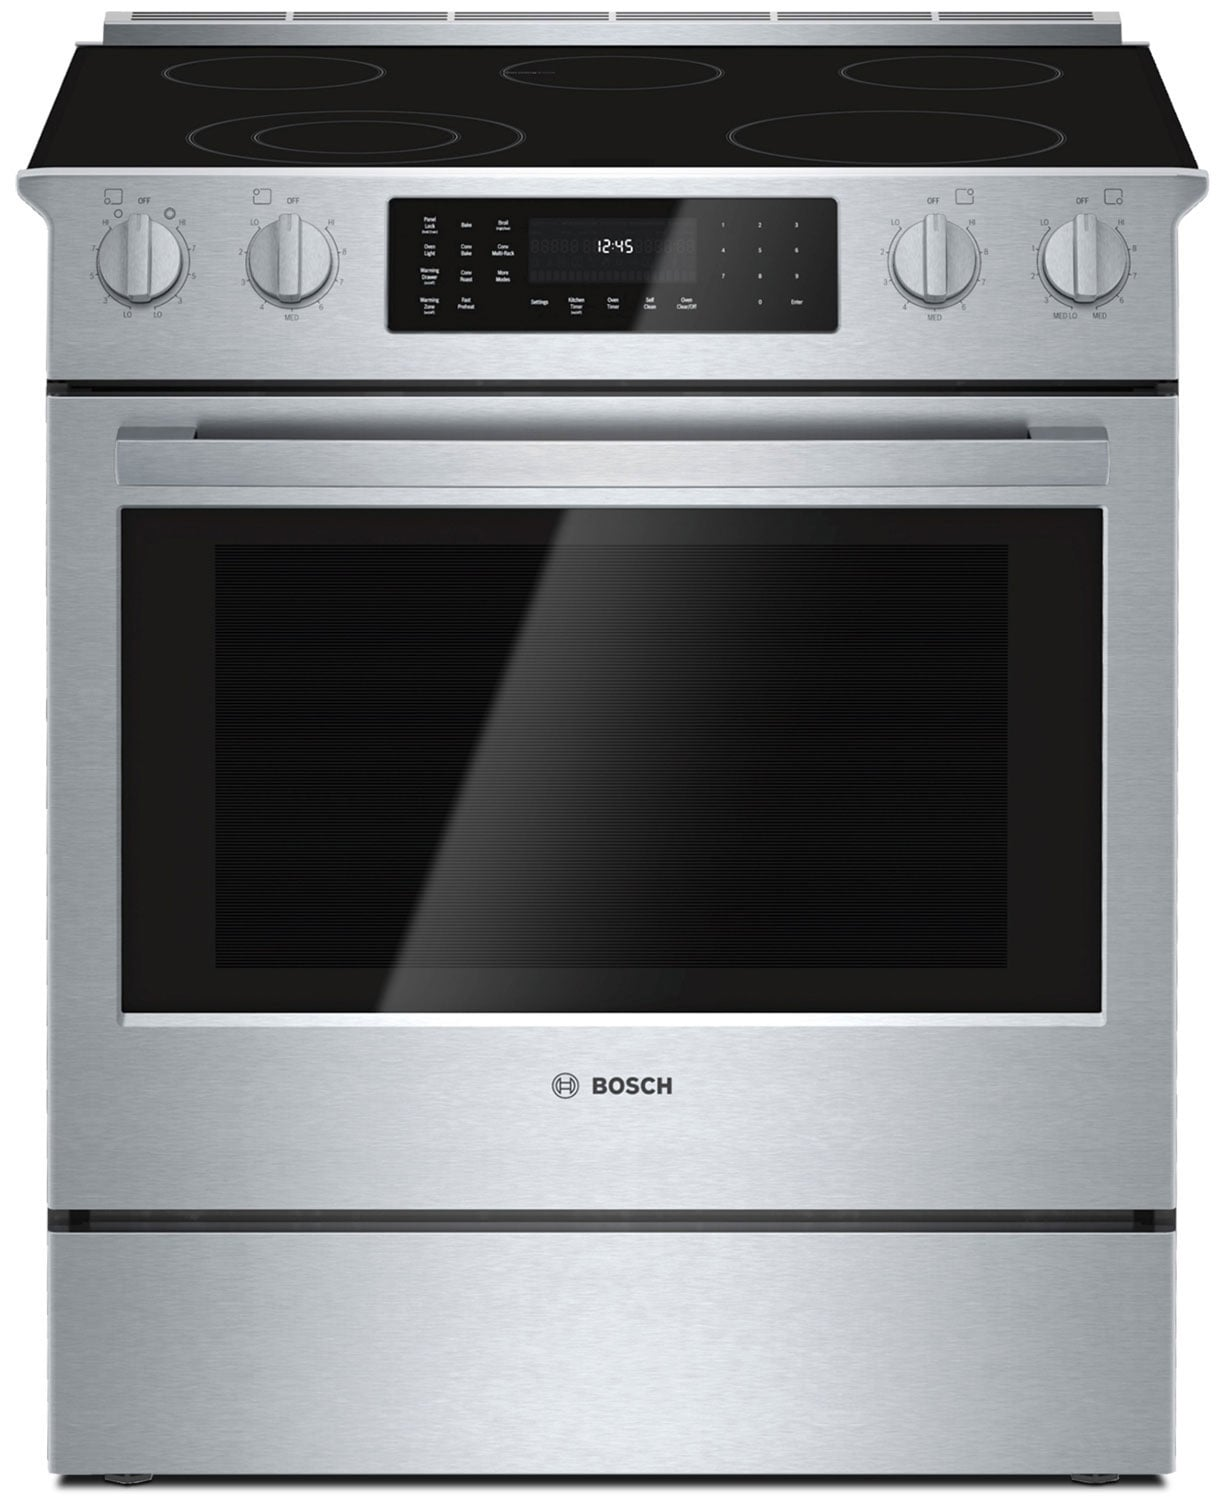 Bosch Stainless Steel Slide-In Electric Convection Range (4.6 Cu. Ft.) - HEI8054C